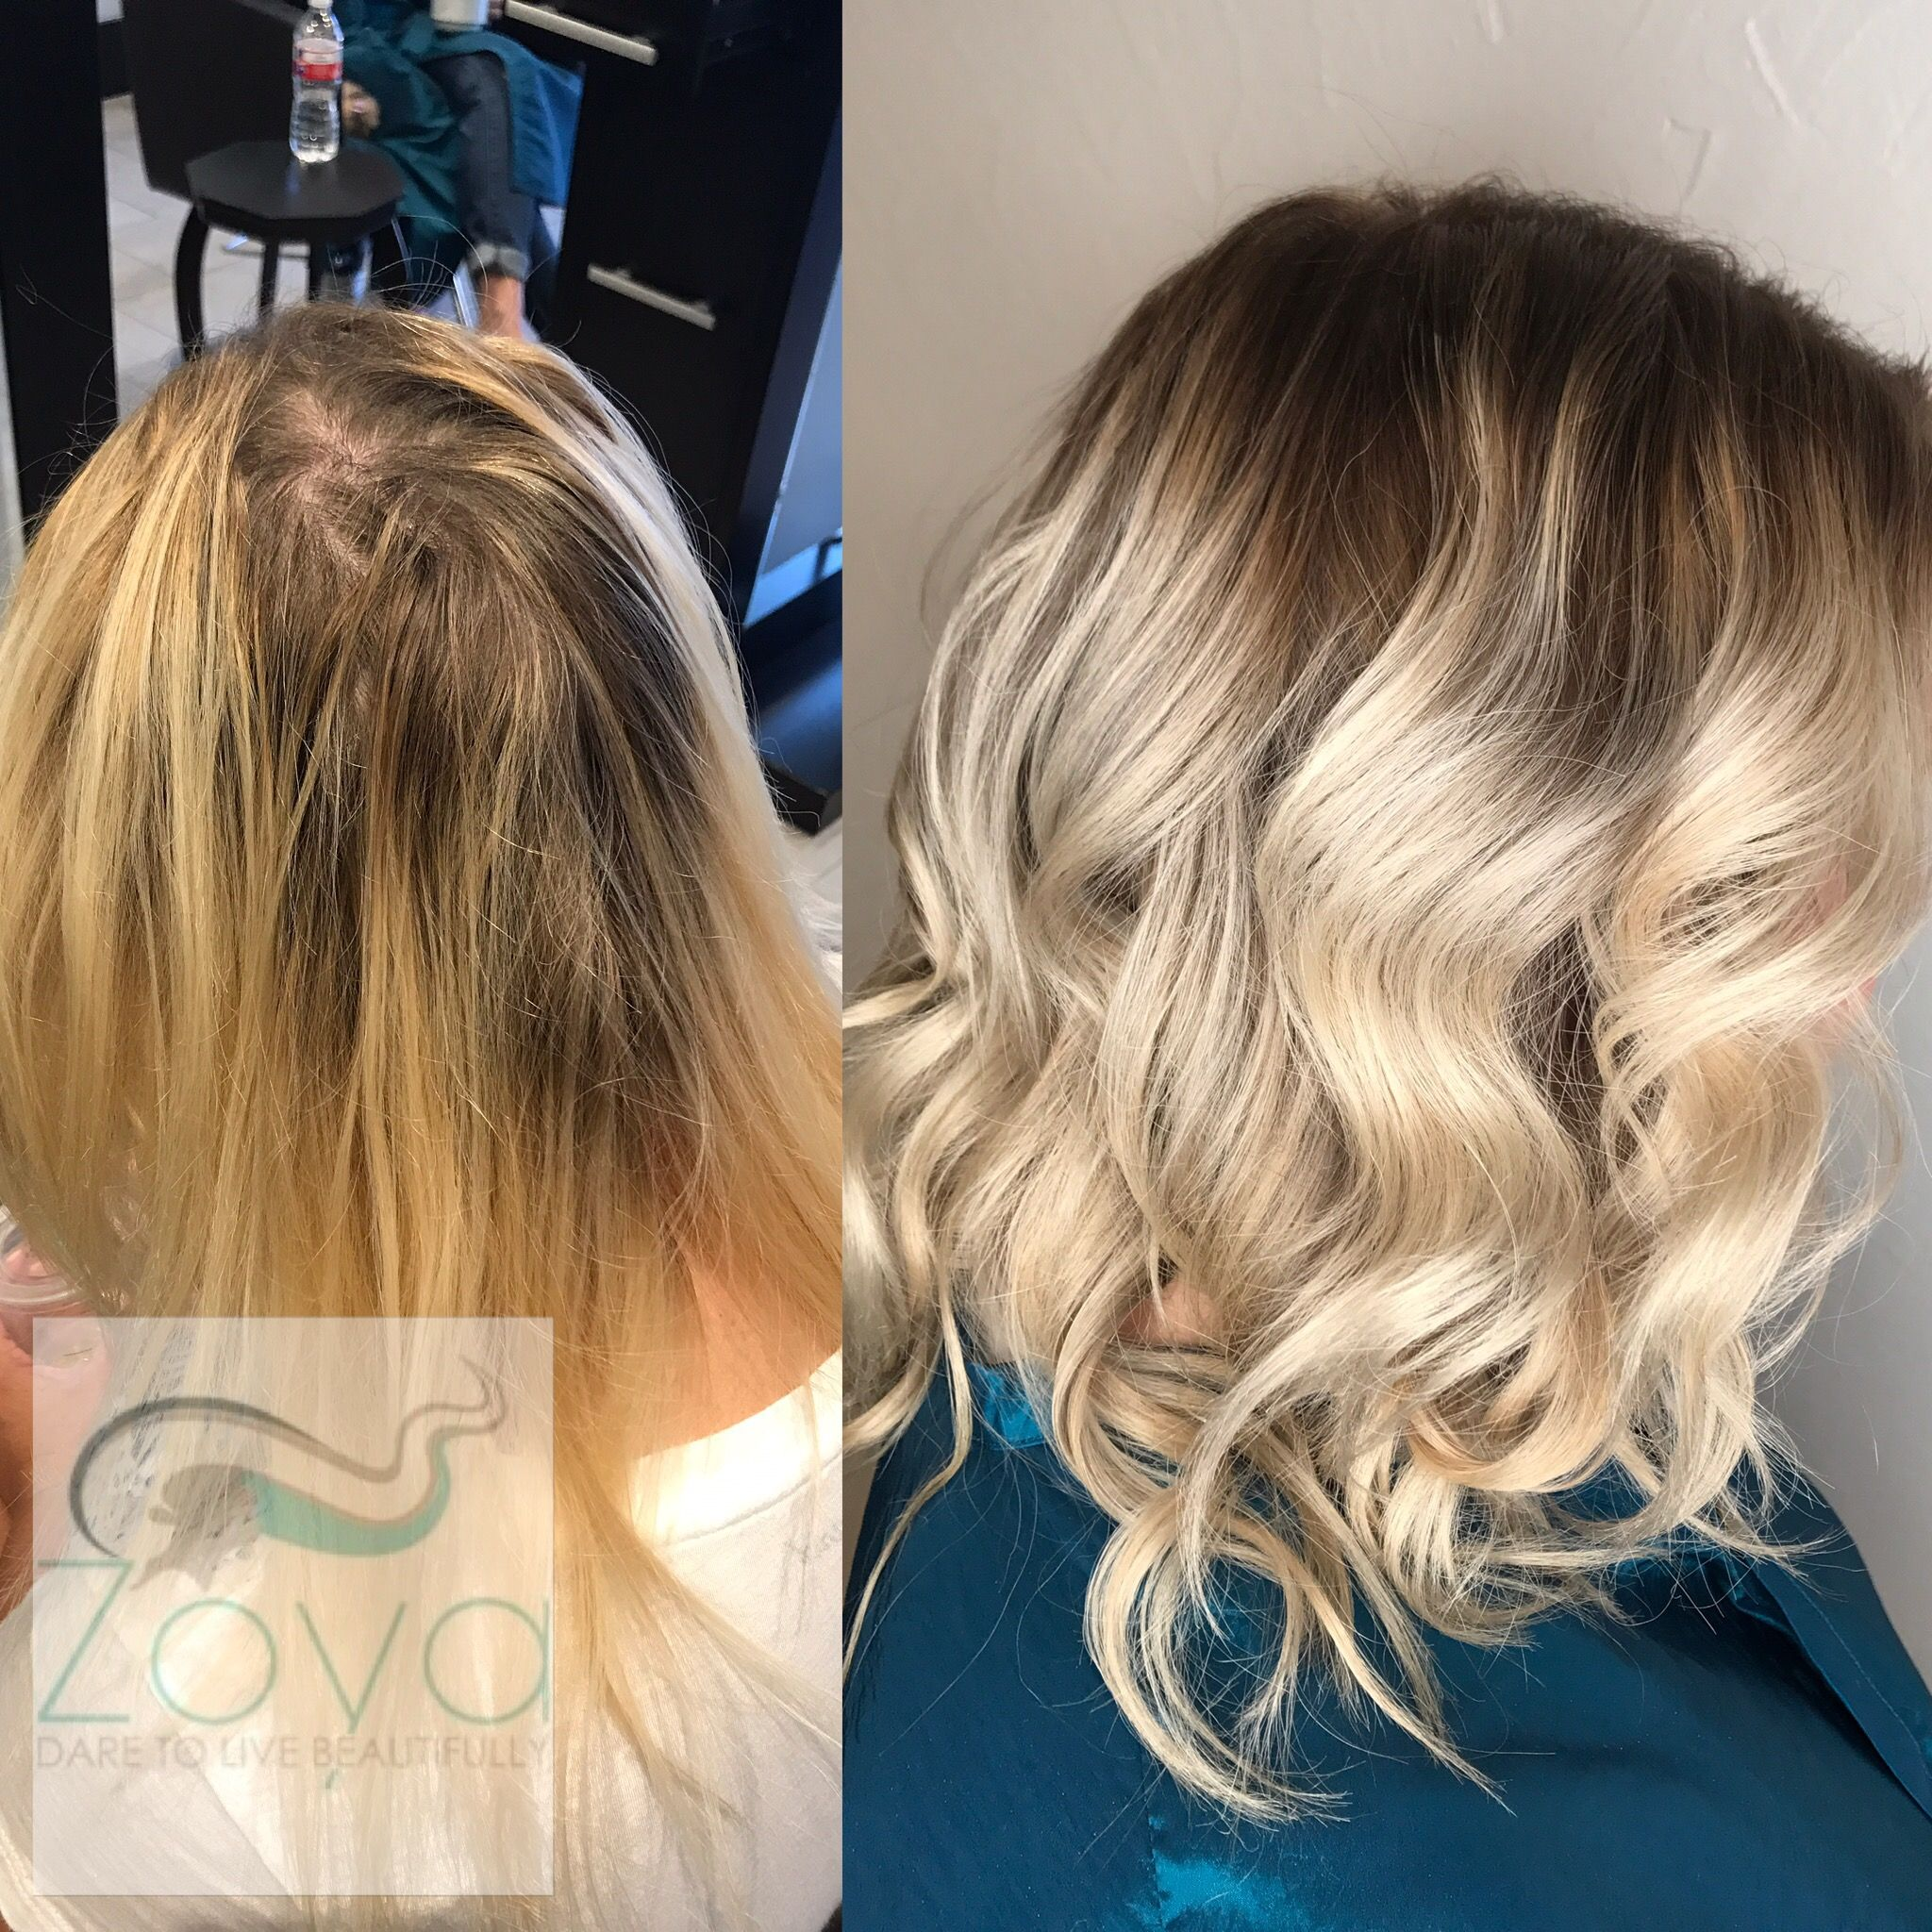 Beautiful Blonde Color Done At Zoya Salon In Addison Texas 972 930 9953 Blonde Zoyasalon Dallas Balayage Ombre Blonde Color Blonde Roots Beliage Hair